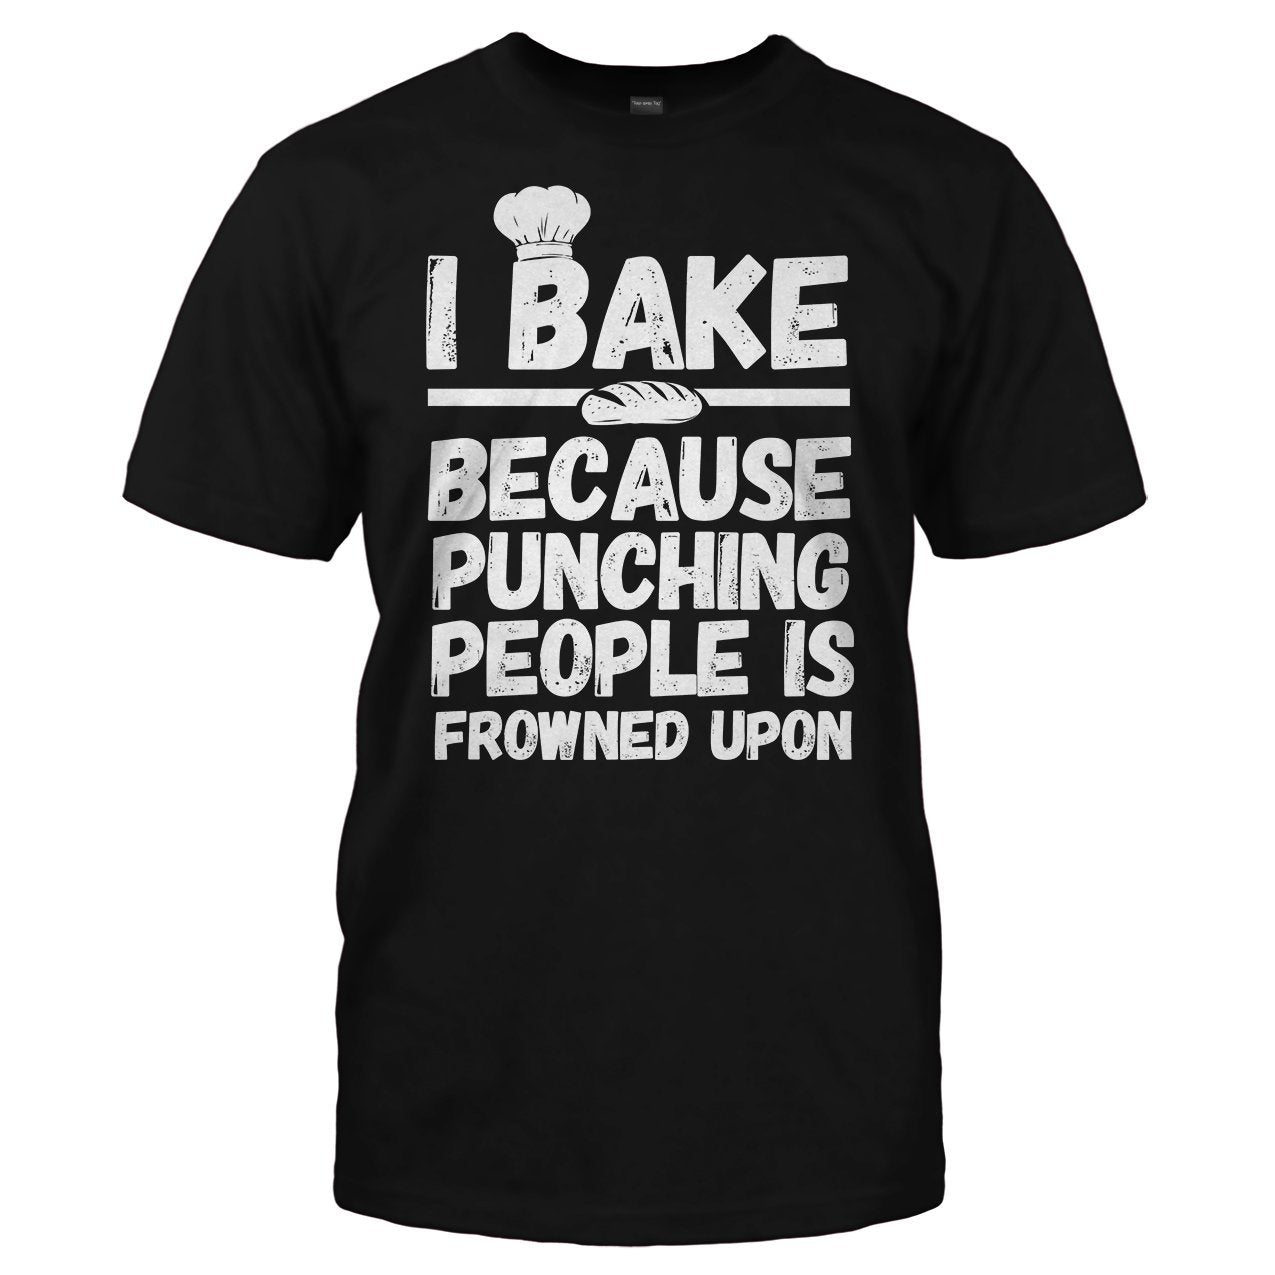 73b6fec56 I Bake Because Punching People Is Frowned Upon T-Shirts & Hoodies ...